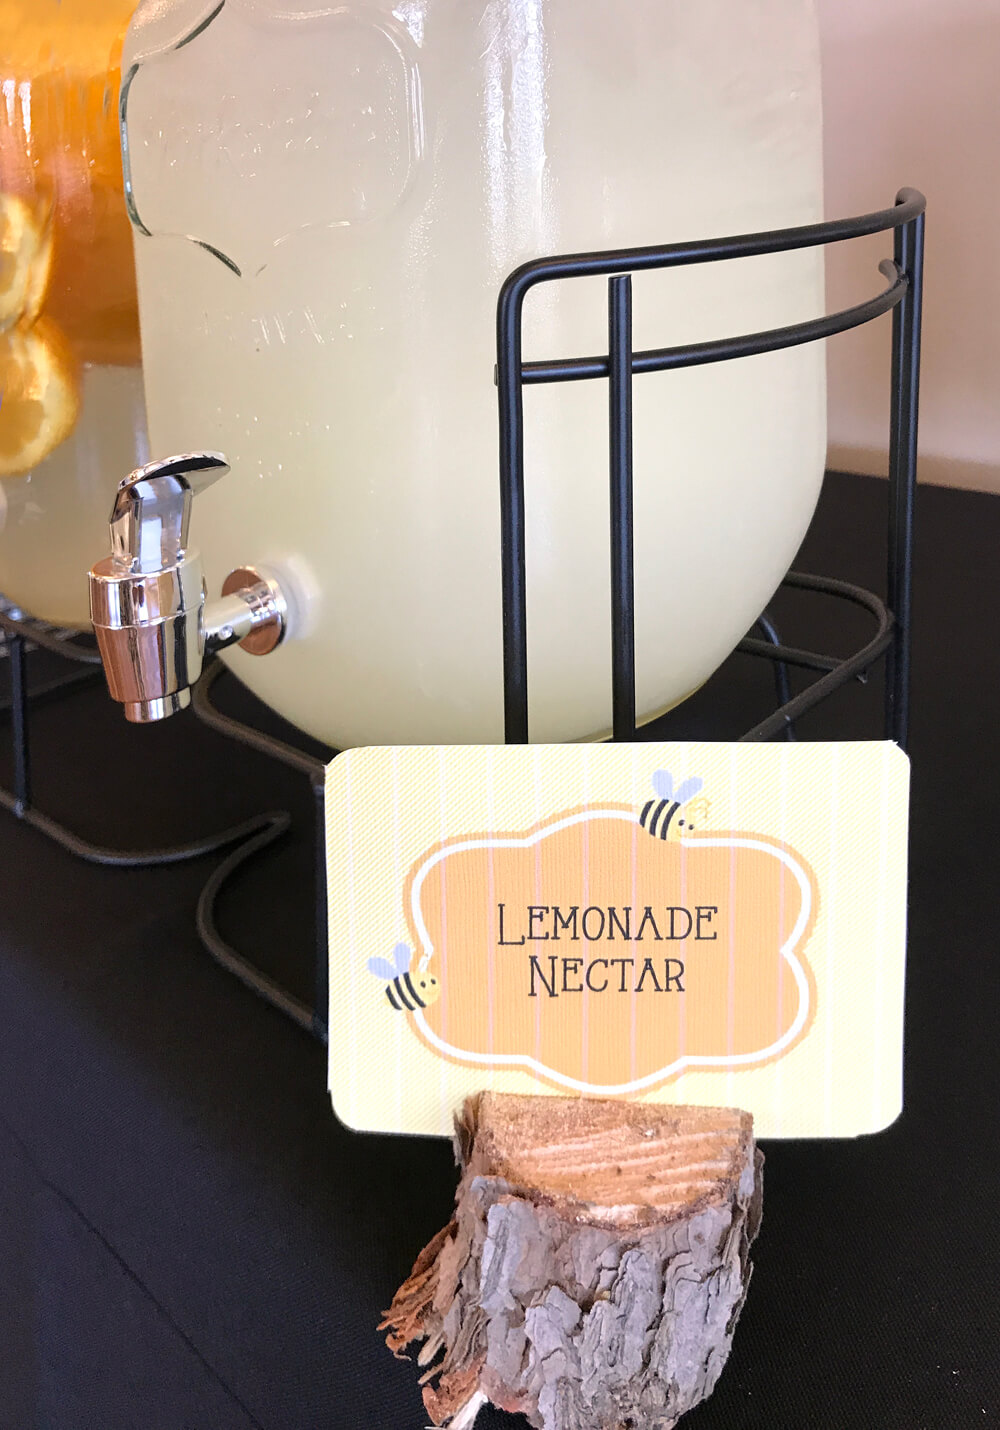 lemonade nectar stand for sweet as can bee baby shower